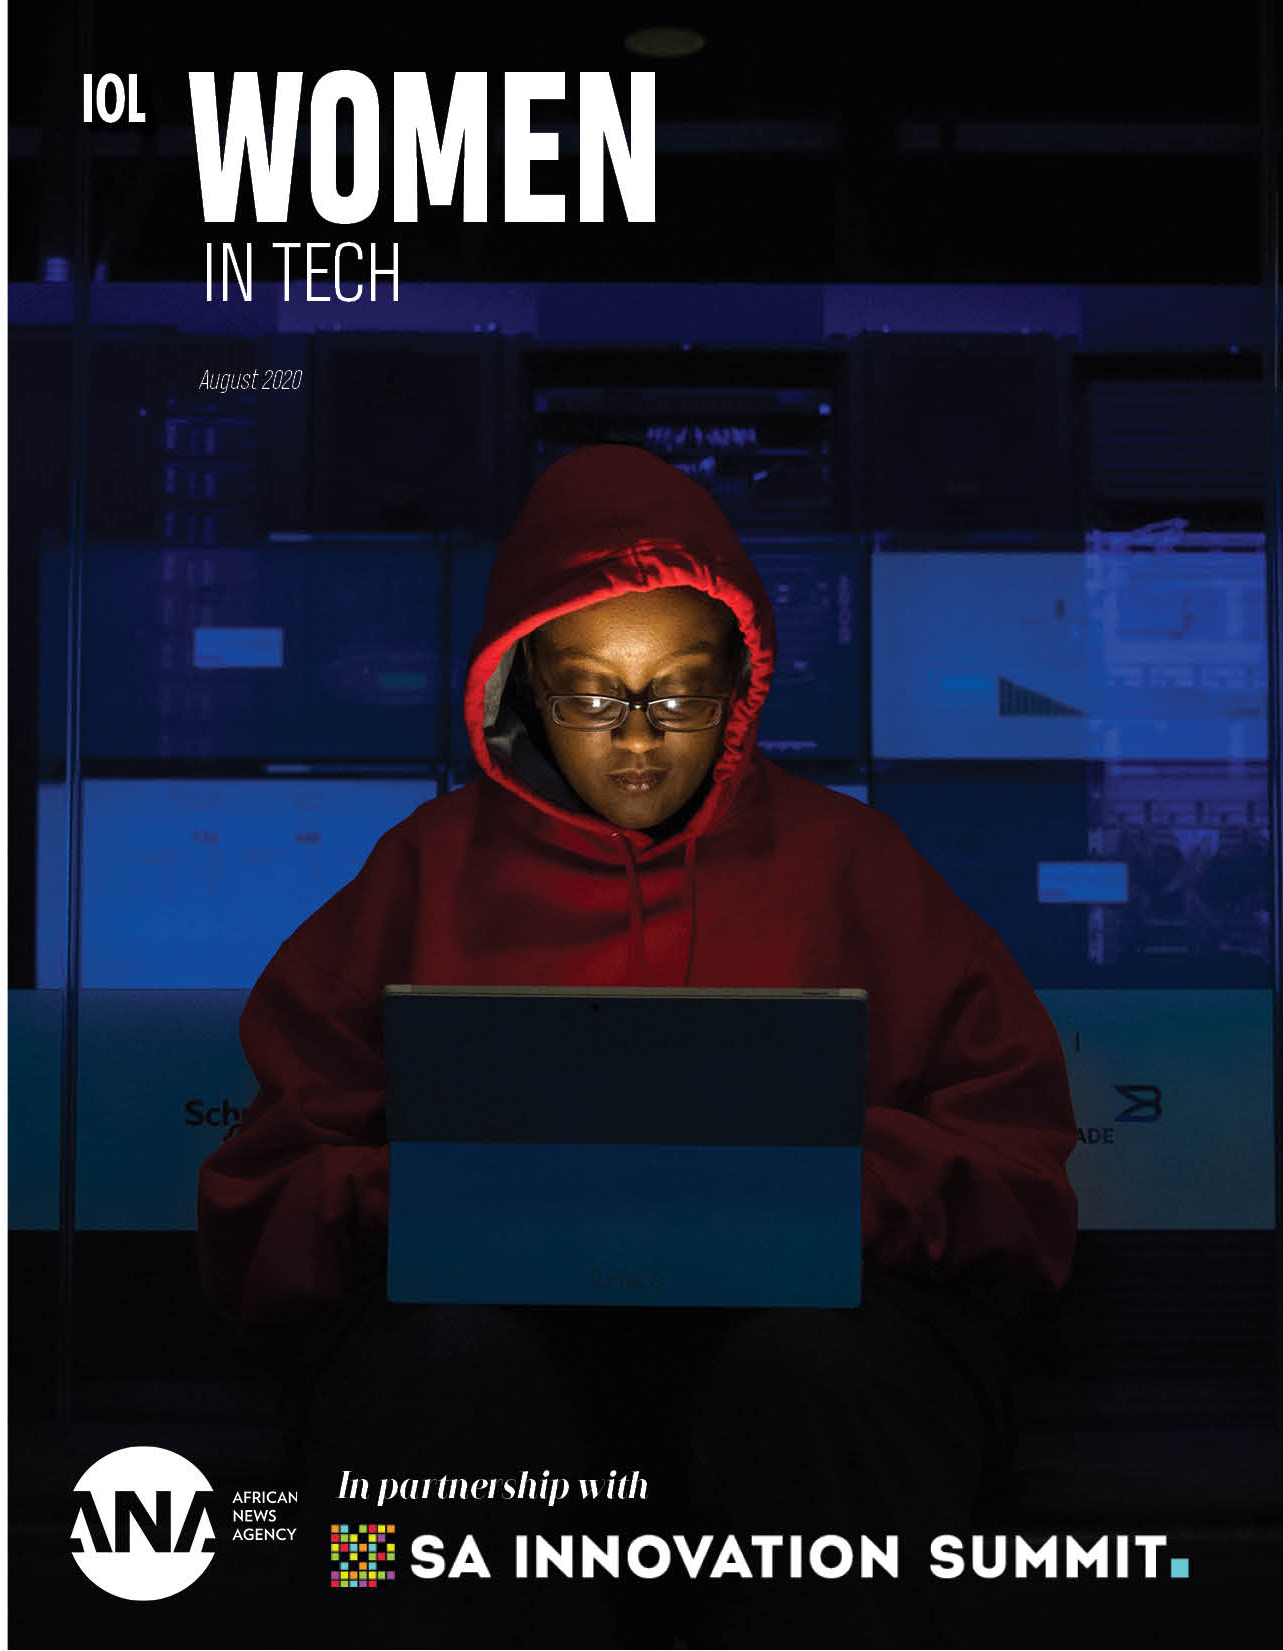 IOL Women in Tech